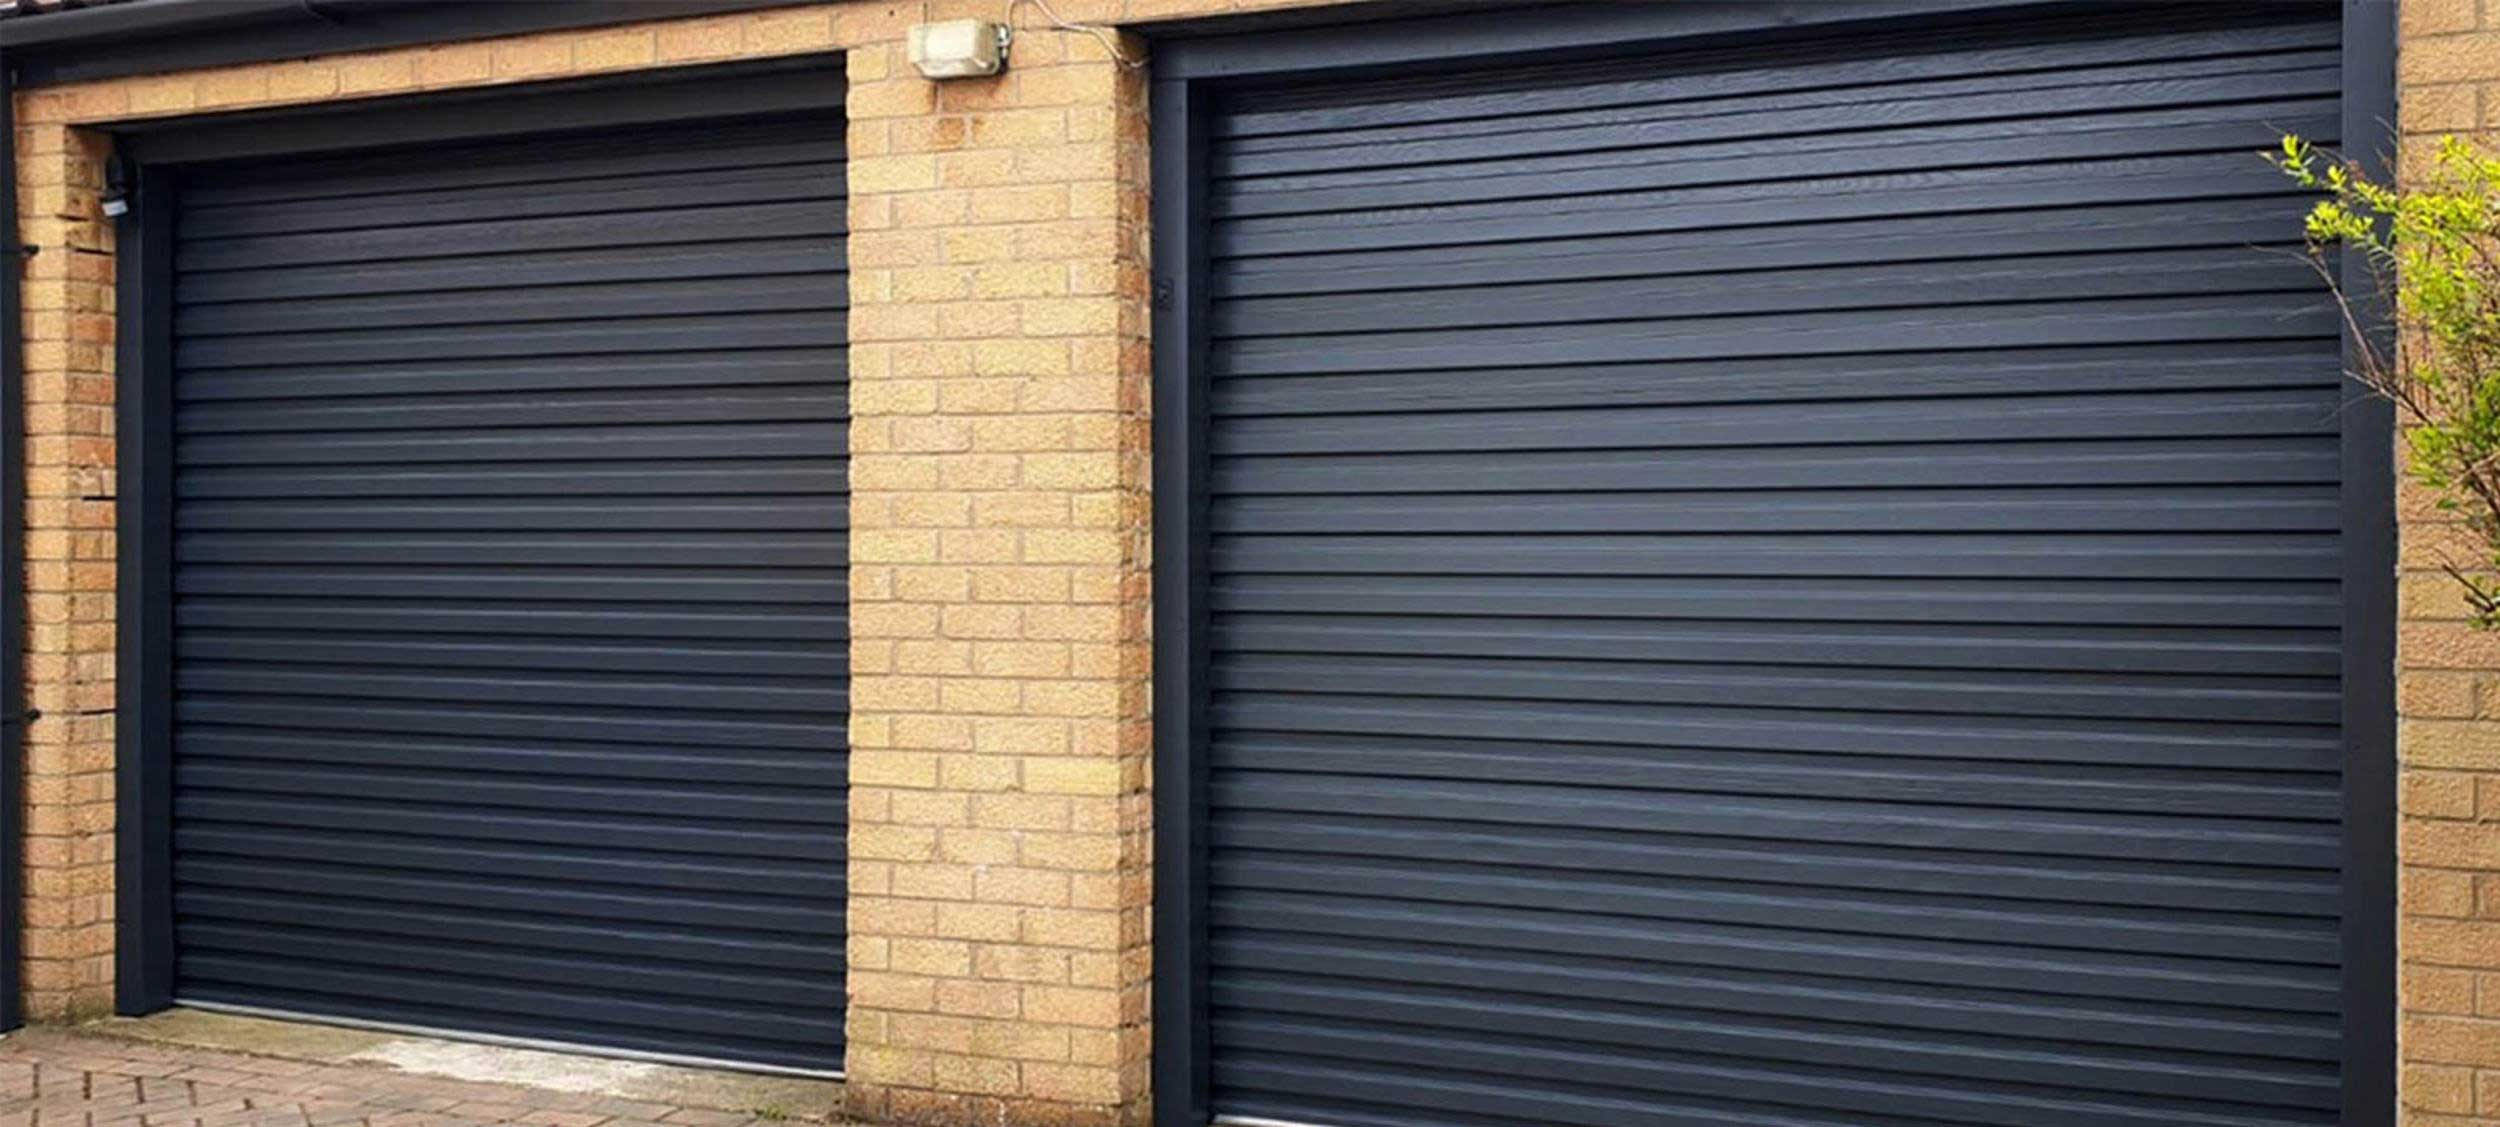 Spray Painting - Garage Door Painted Grey by UPVC Spray Painters